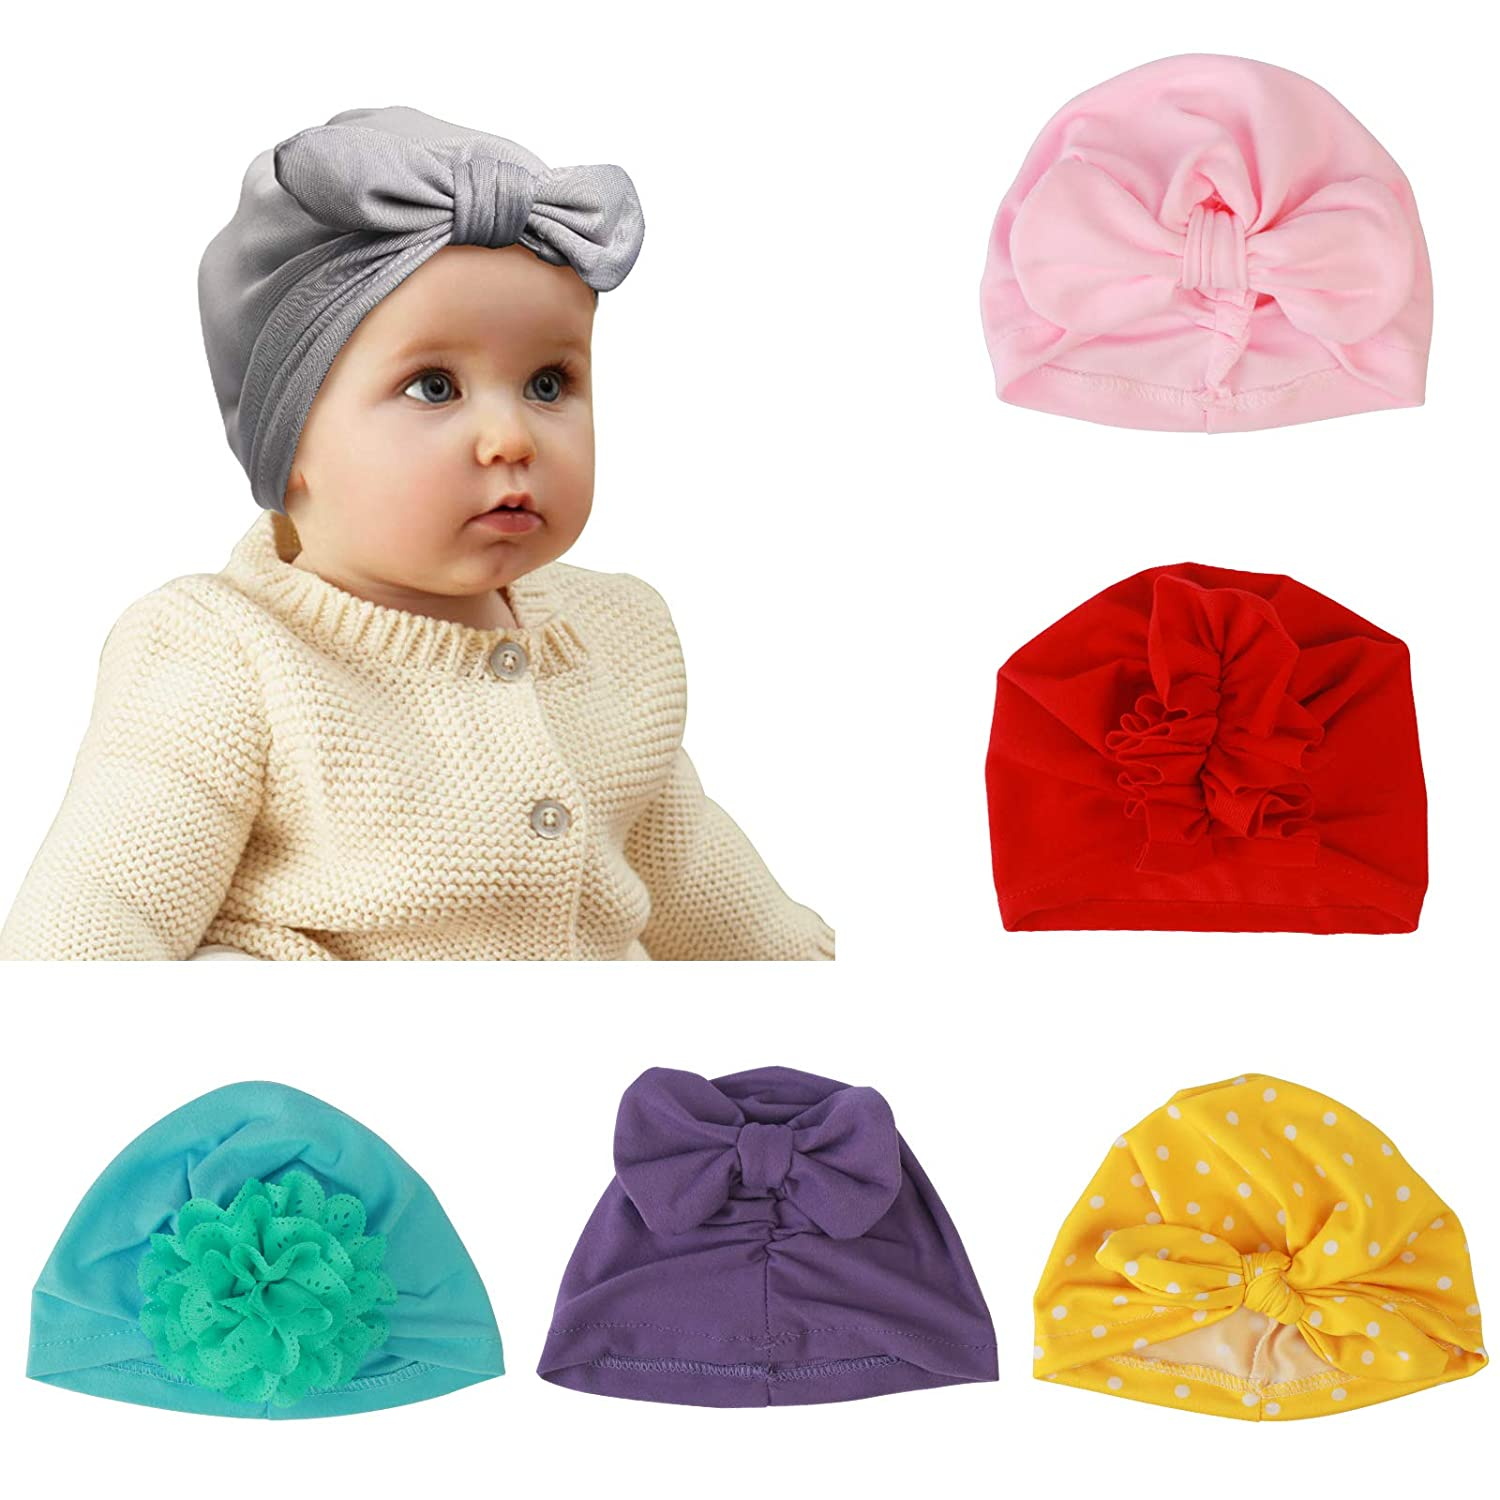 0fd75d0e9 ZoomSky Baby Girl Turban, 6pcs Soft Knot Bow Cap Newborn Hat India Toddler  Cap for The Baby from 3 to 12 Months